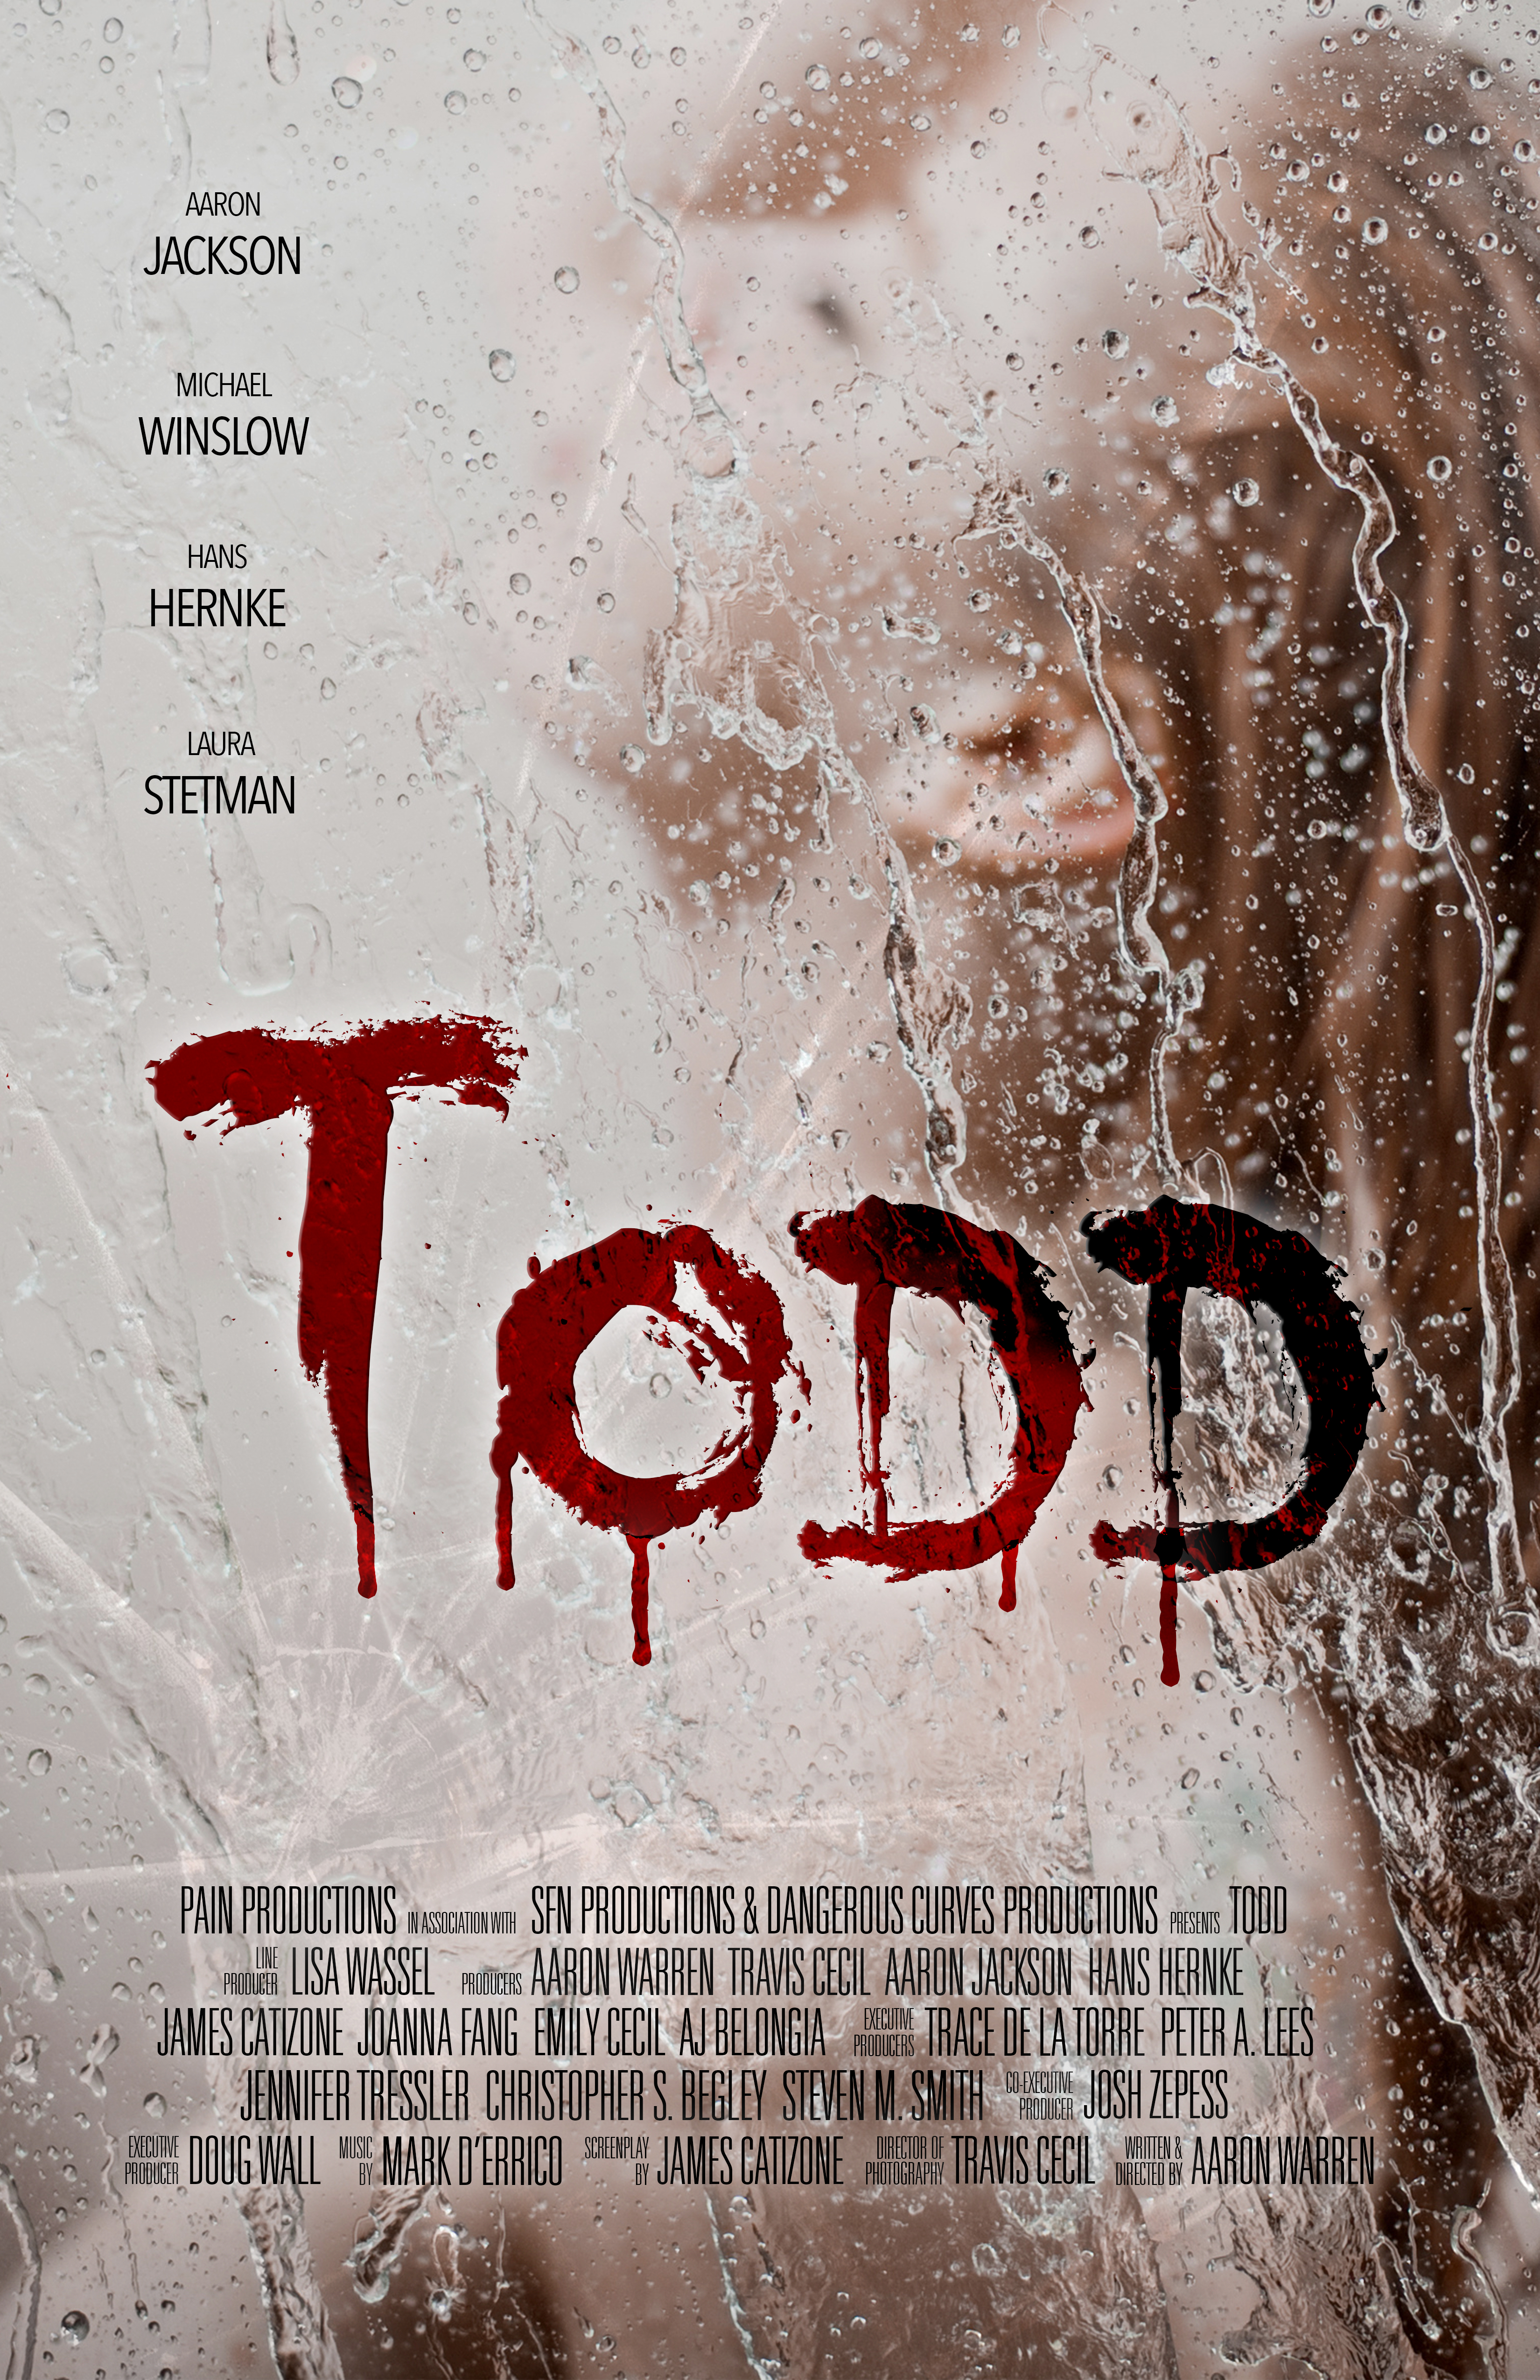 Todd hd on soap2day